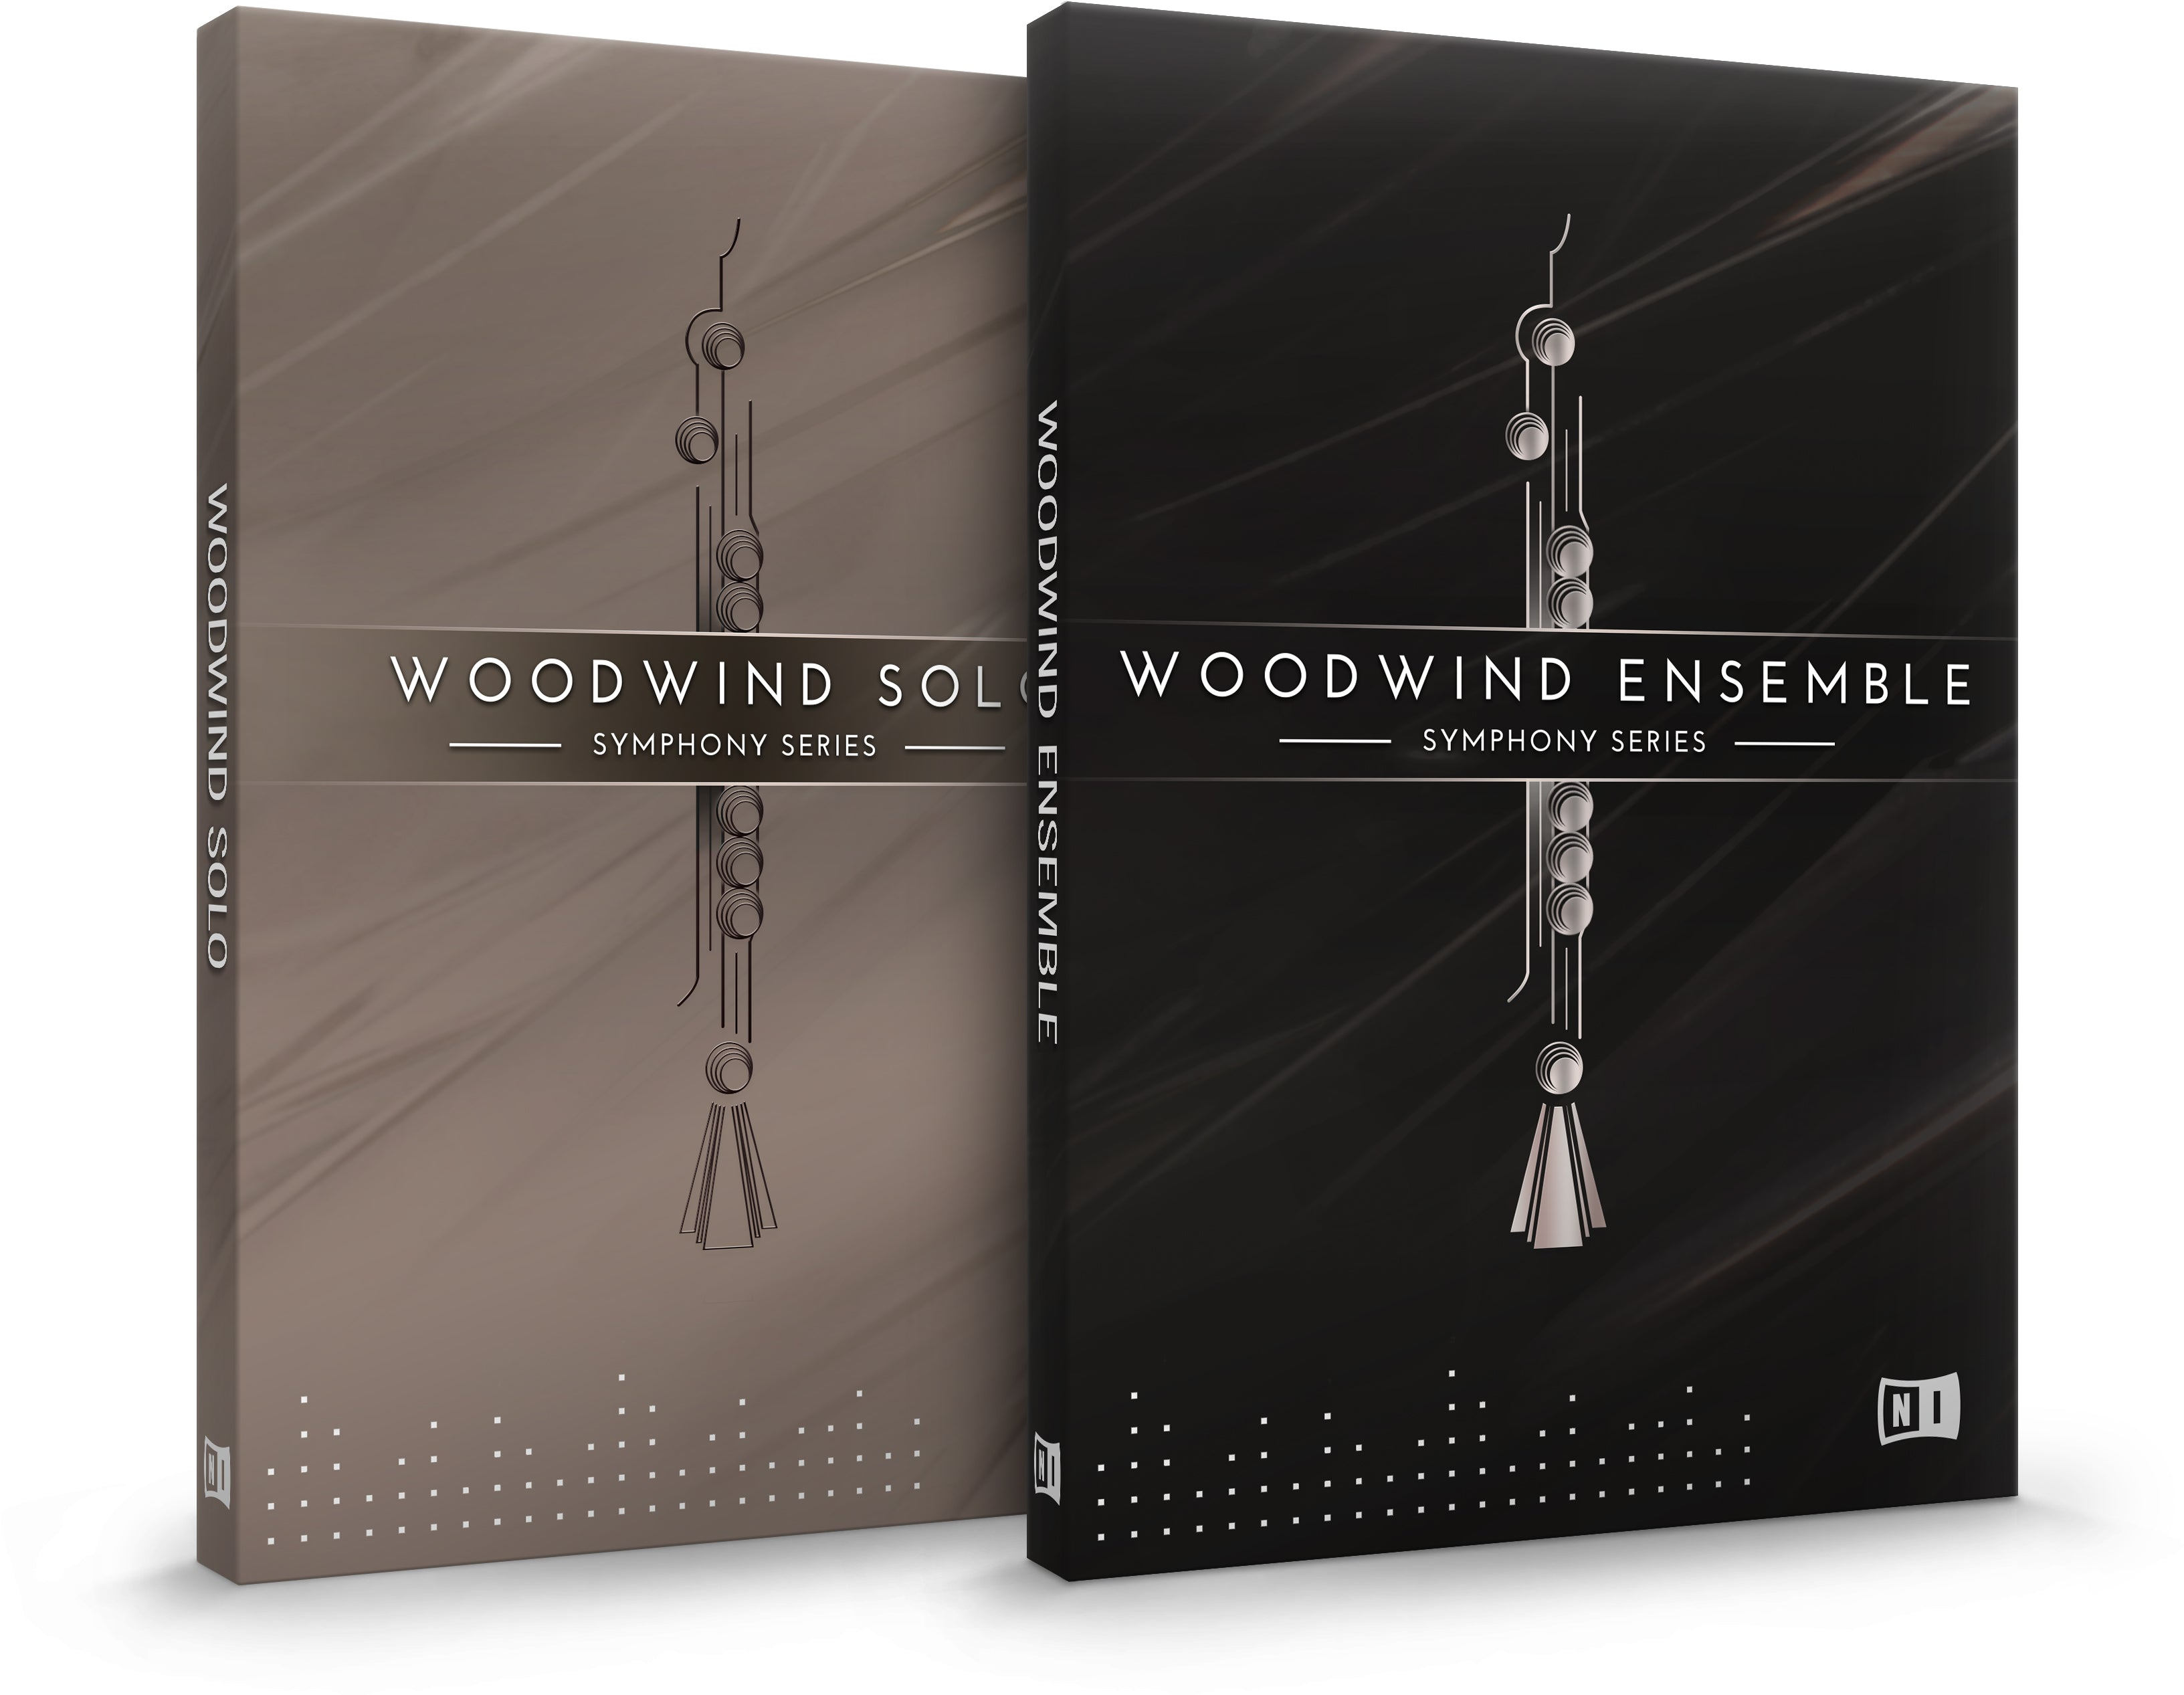 Symphony Series Woodwind Collection